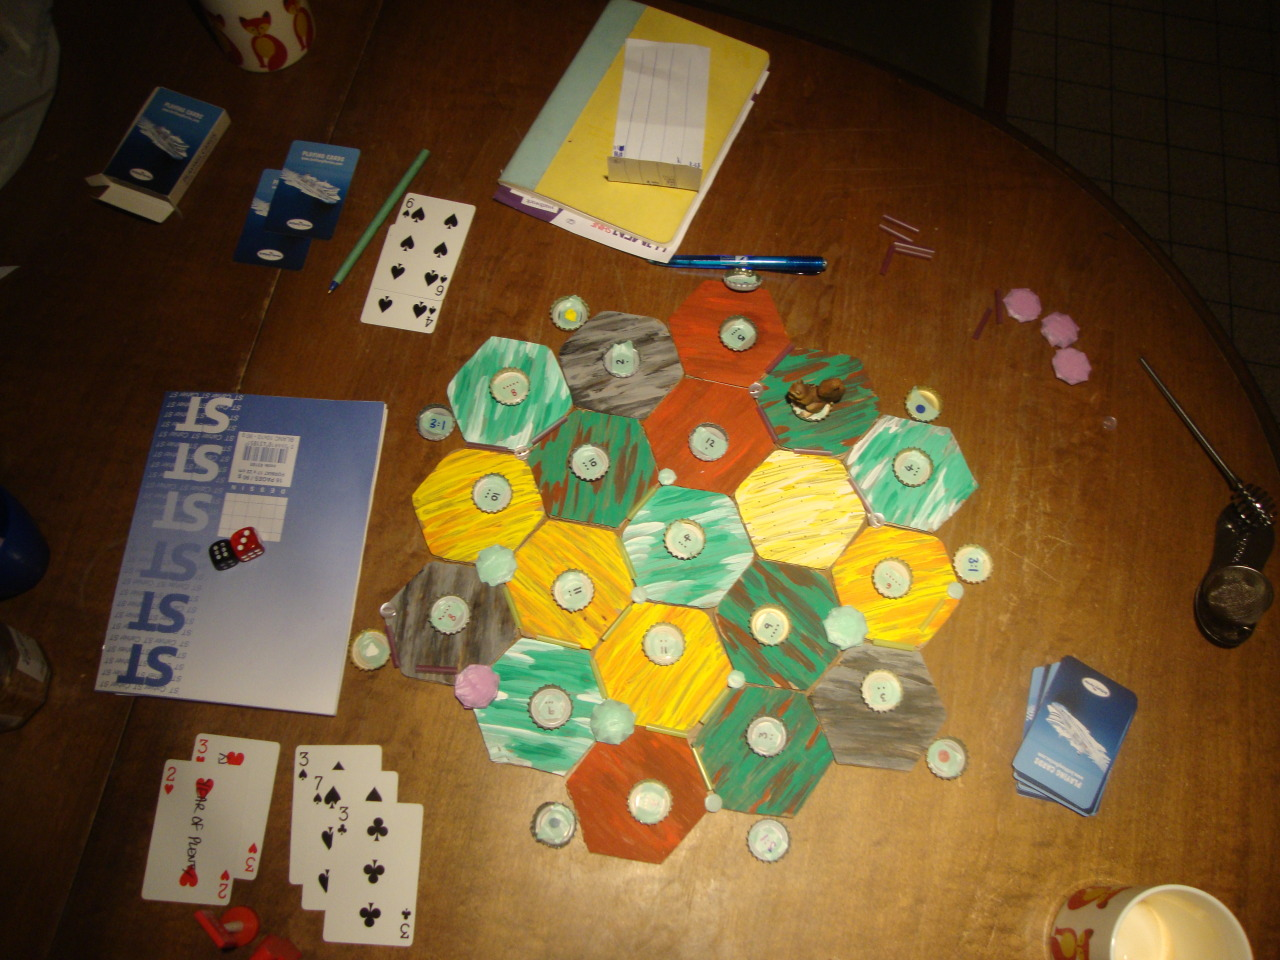 homemade two player Settlers of Catan all you need: 19 painted cardboard hexes 27 numbered beer bottle caps  2 dice 8 big buttons (cities) 10 small buttons (settlements) straws, cut into 1 inch lengths (roads) small toy squirrel (the robber) old deck of cards and a sharpie (development cards) pen and paper (recording resources tally style)